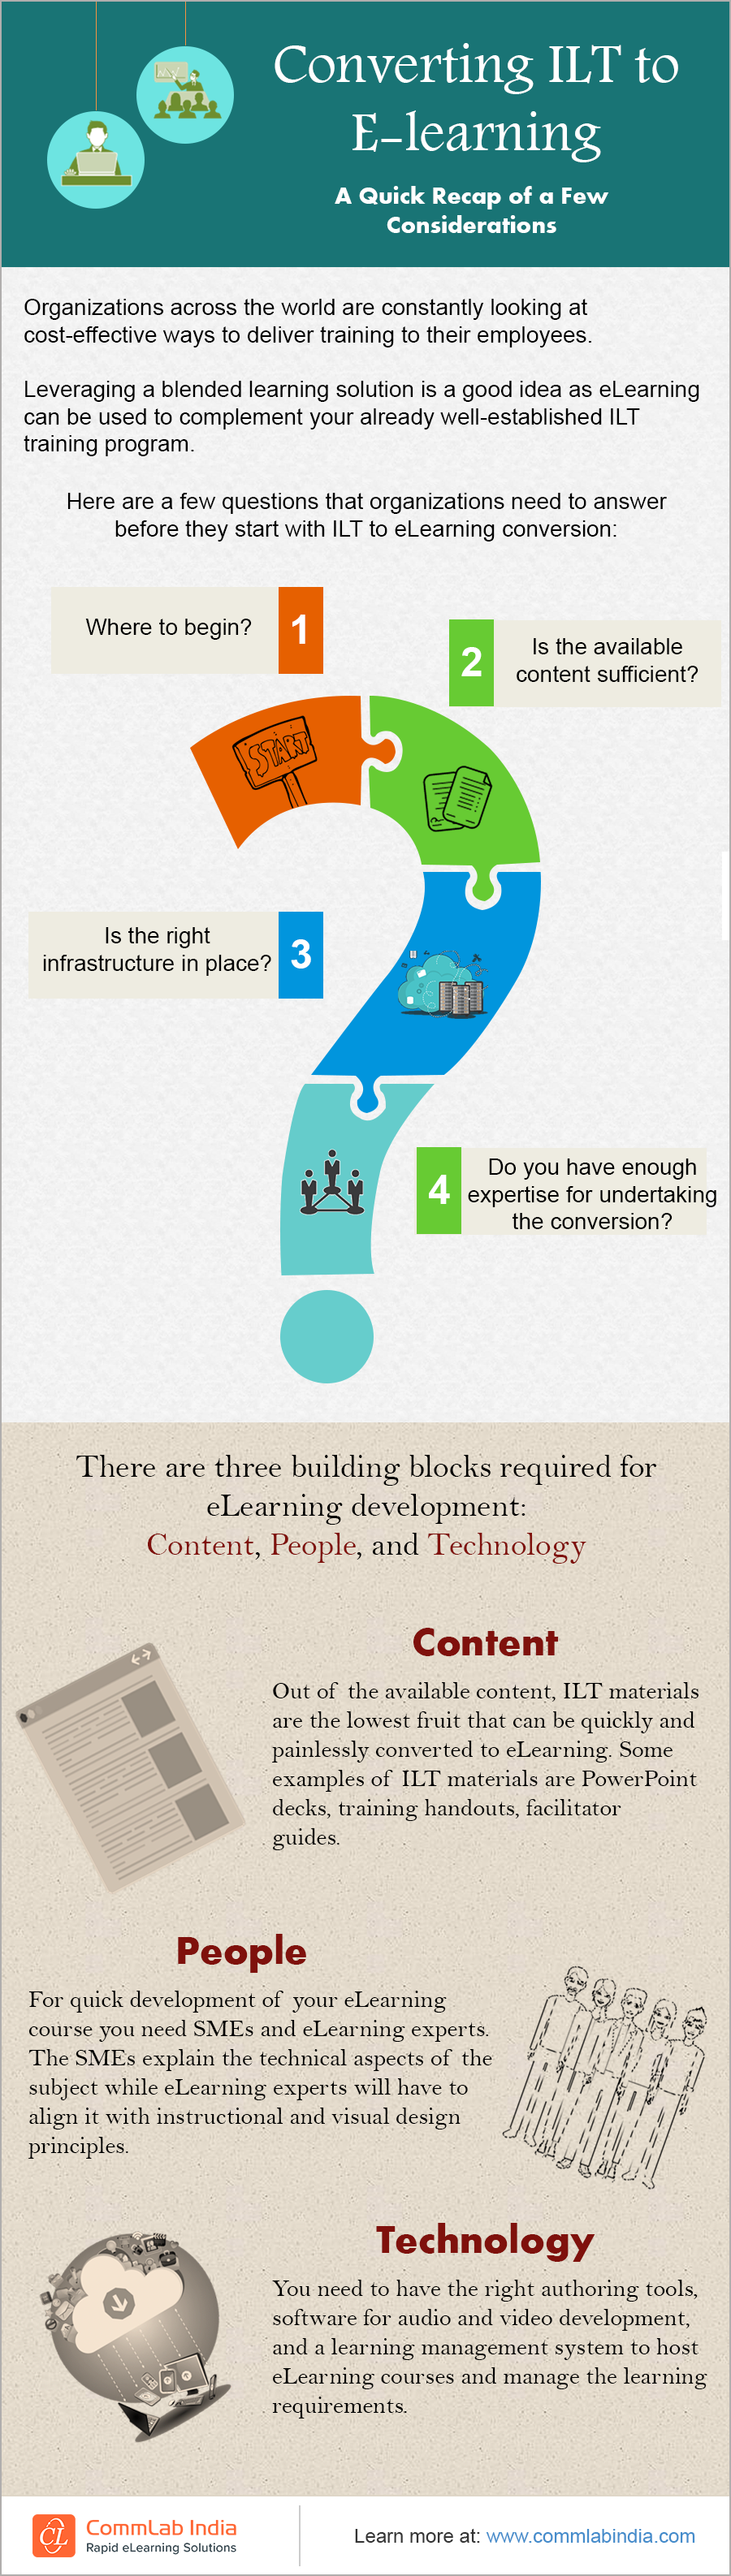 Converting ILT to eLearning: A Quick Recap of A Few Considerations [Infographic]